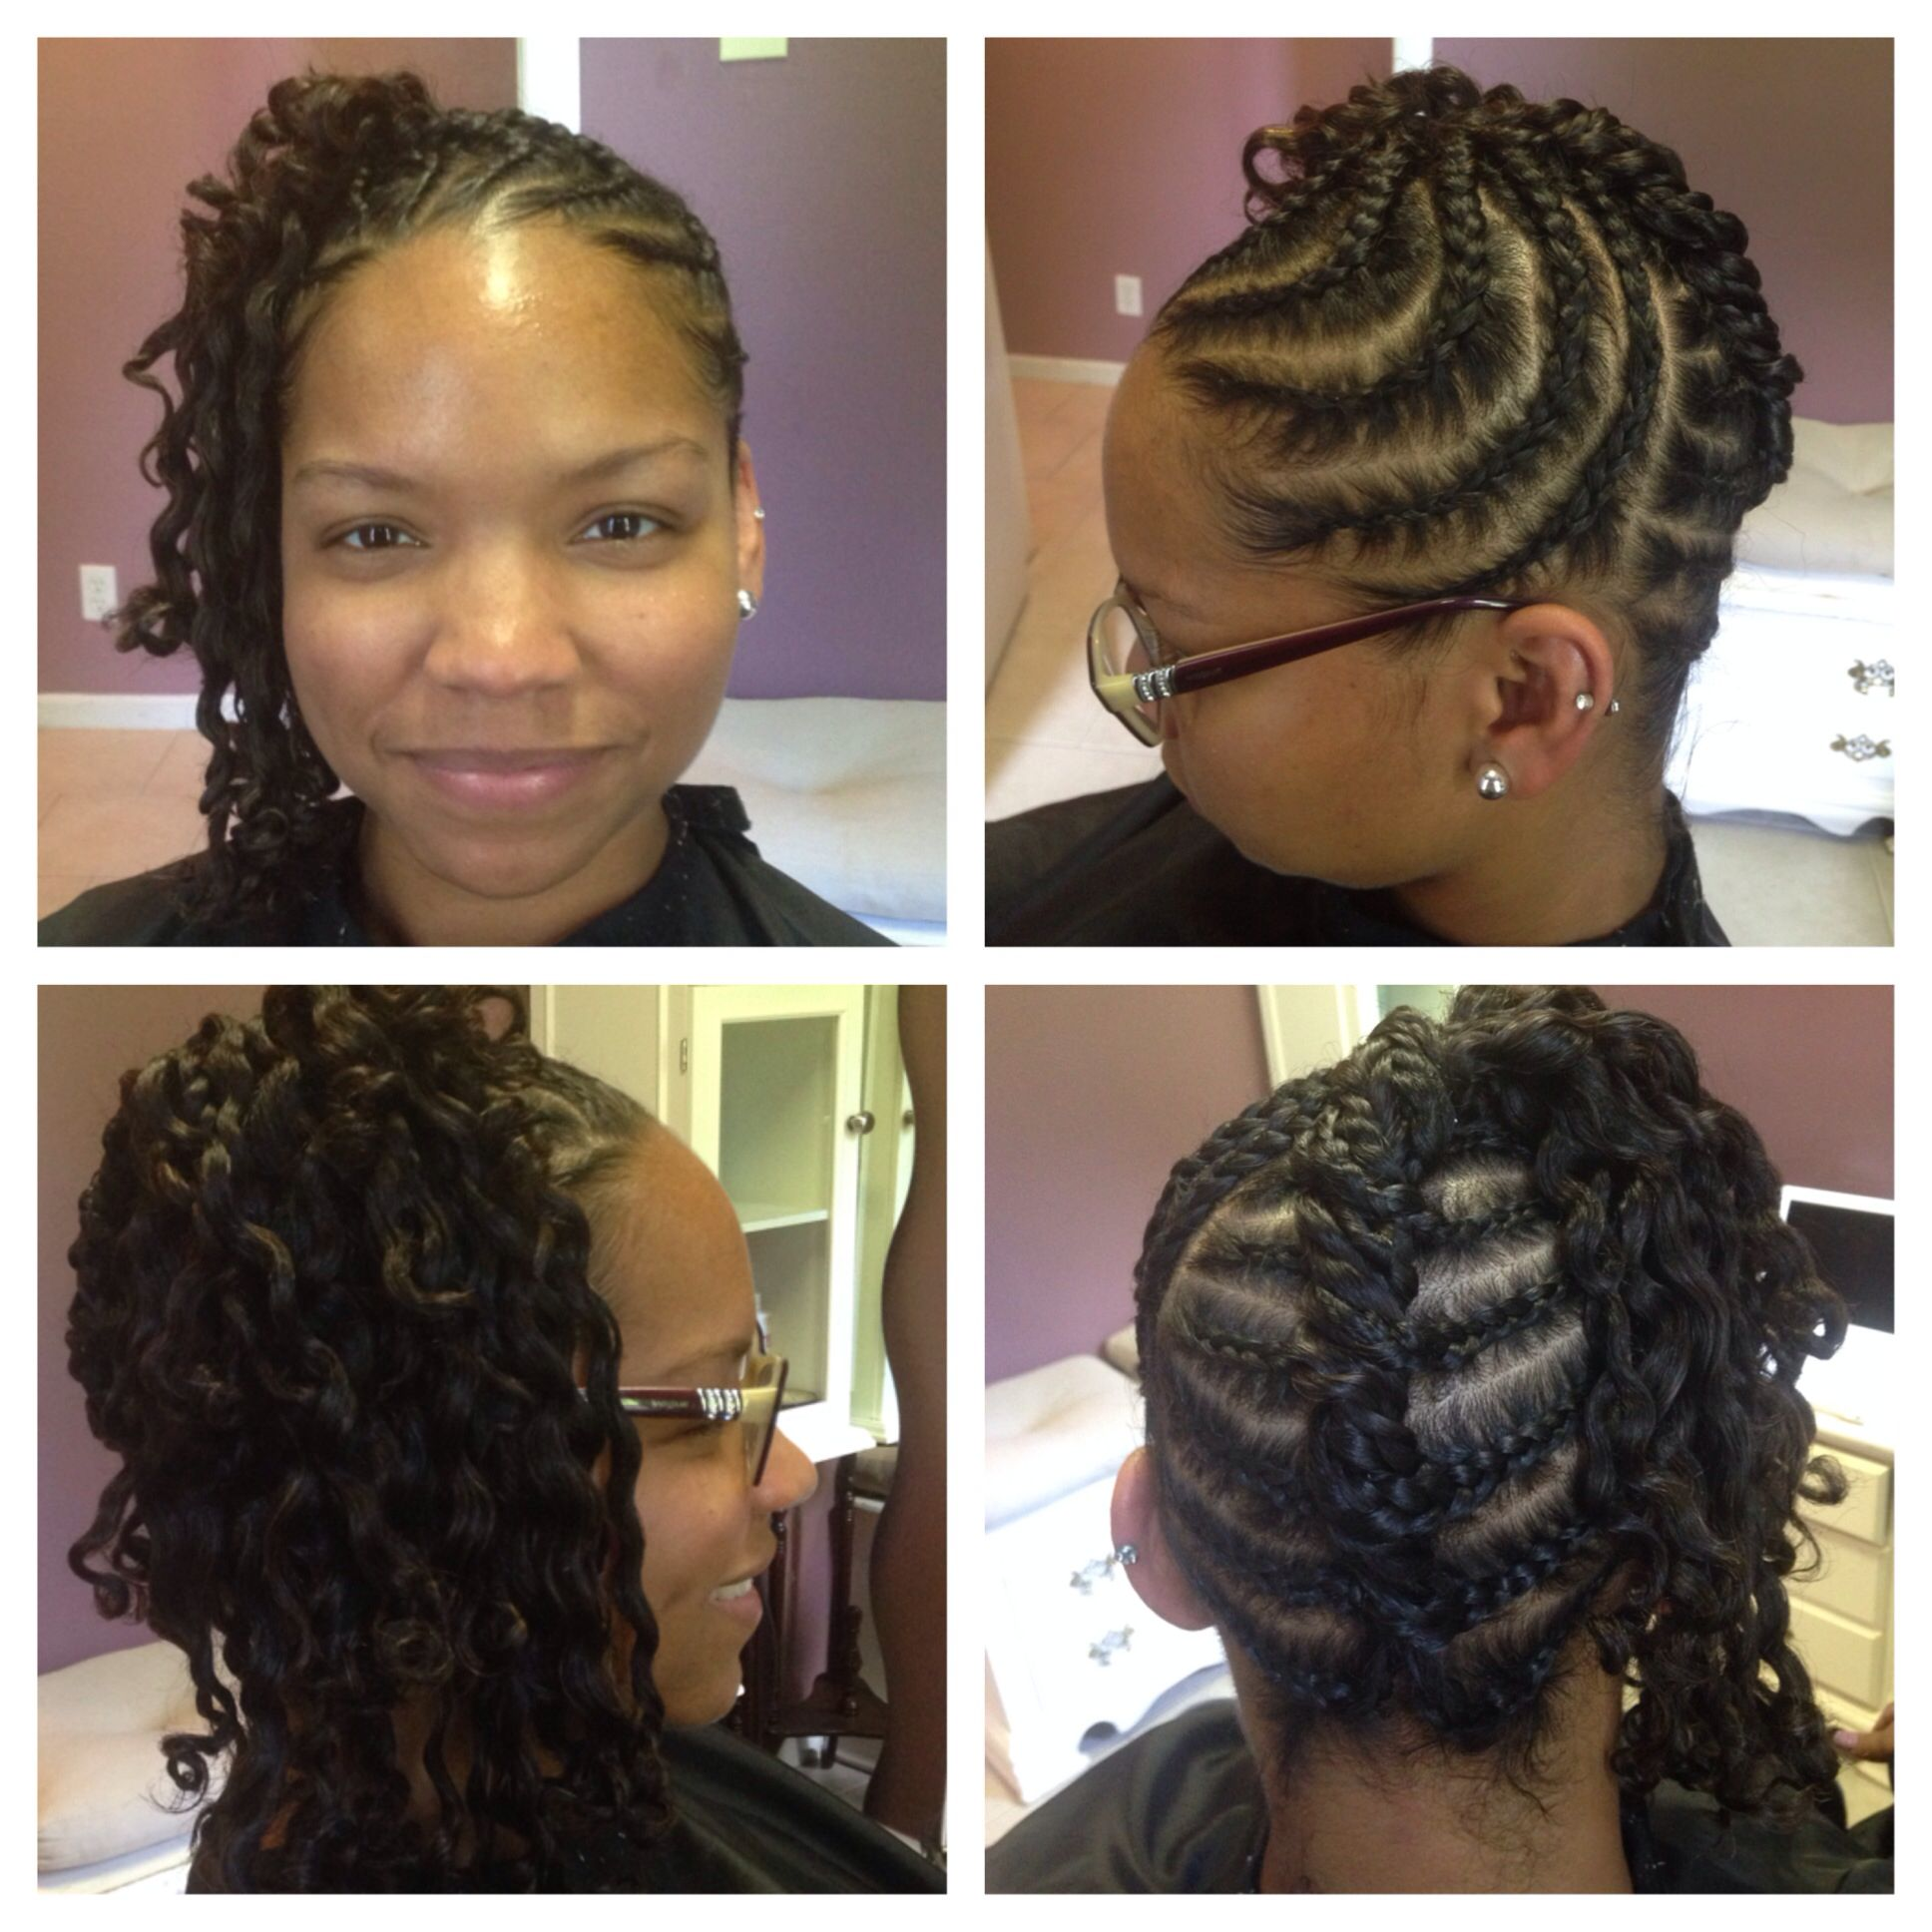 French braided flat twisted updo.